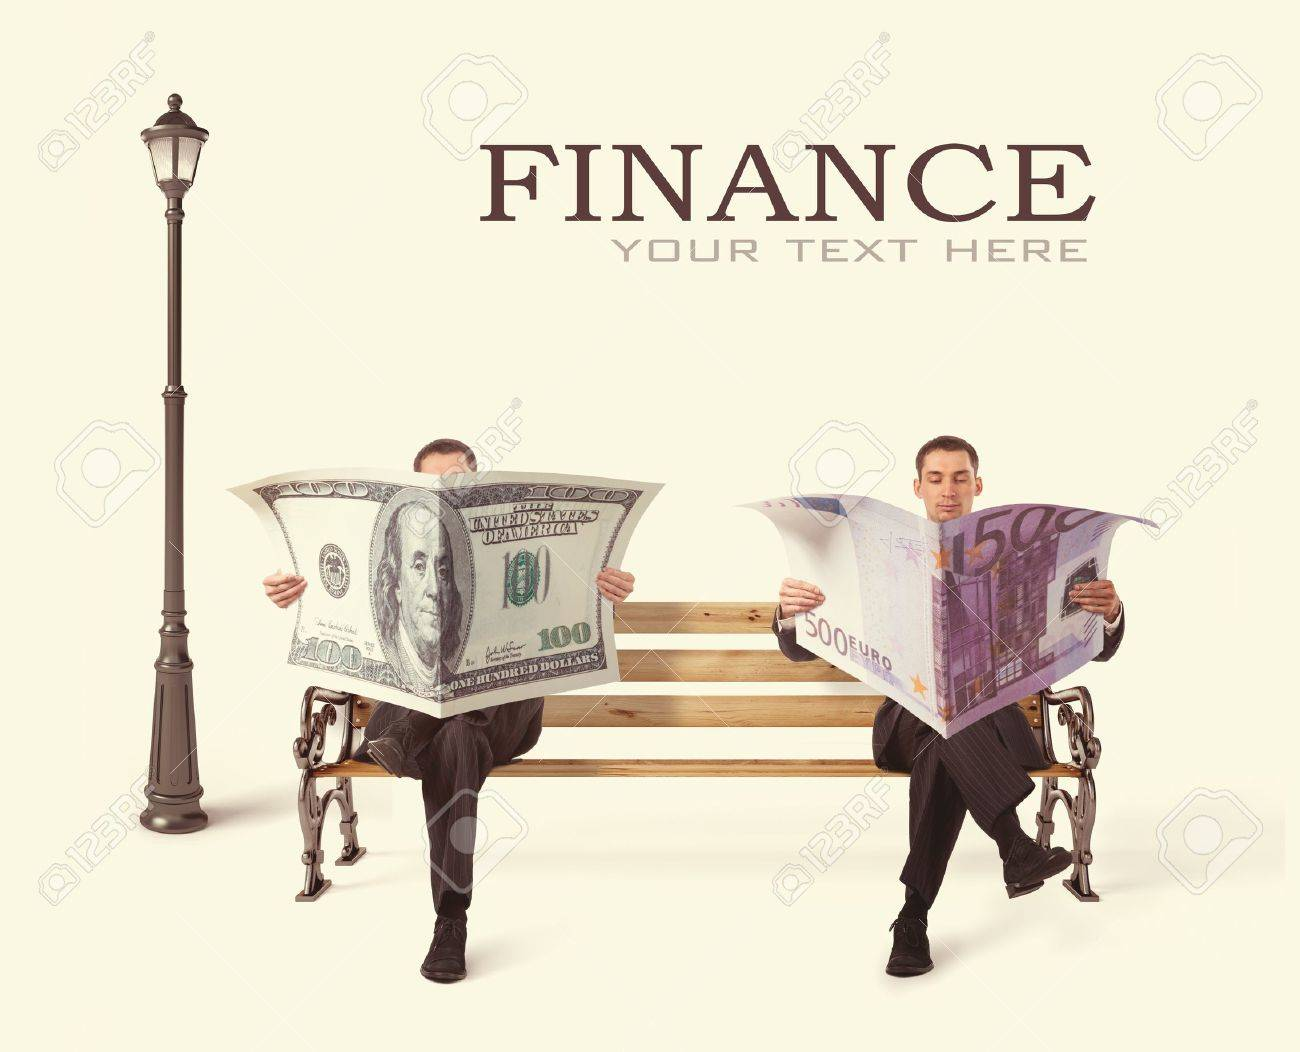 Business People sitting on a bench with currency in hands Stock Photo - 16465268